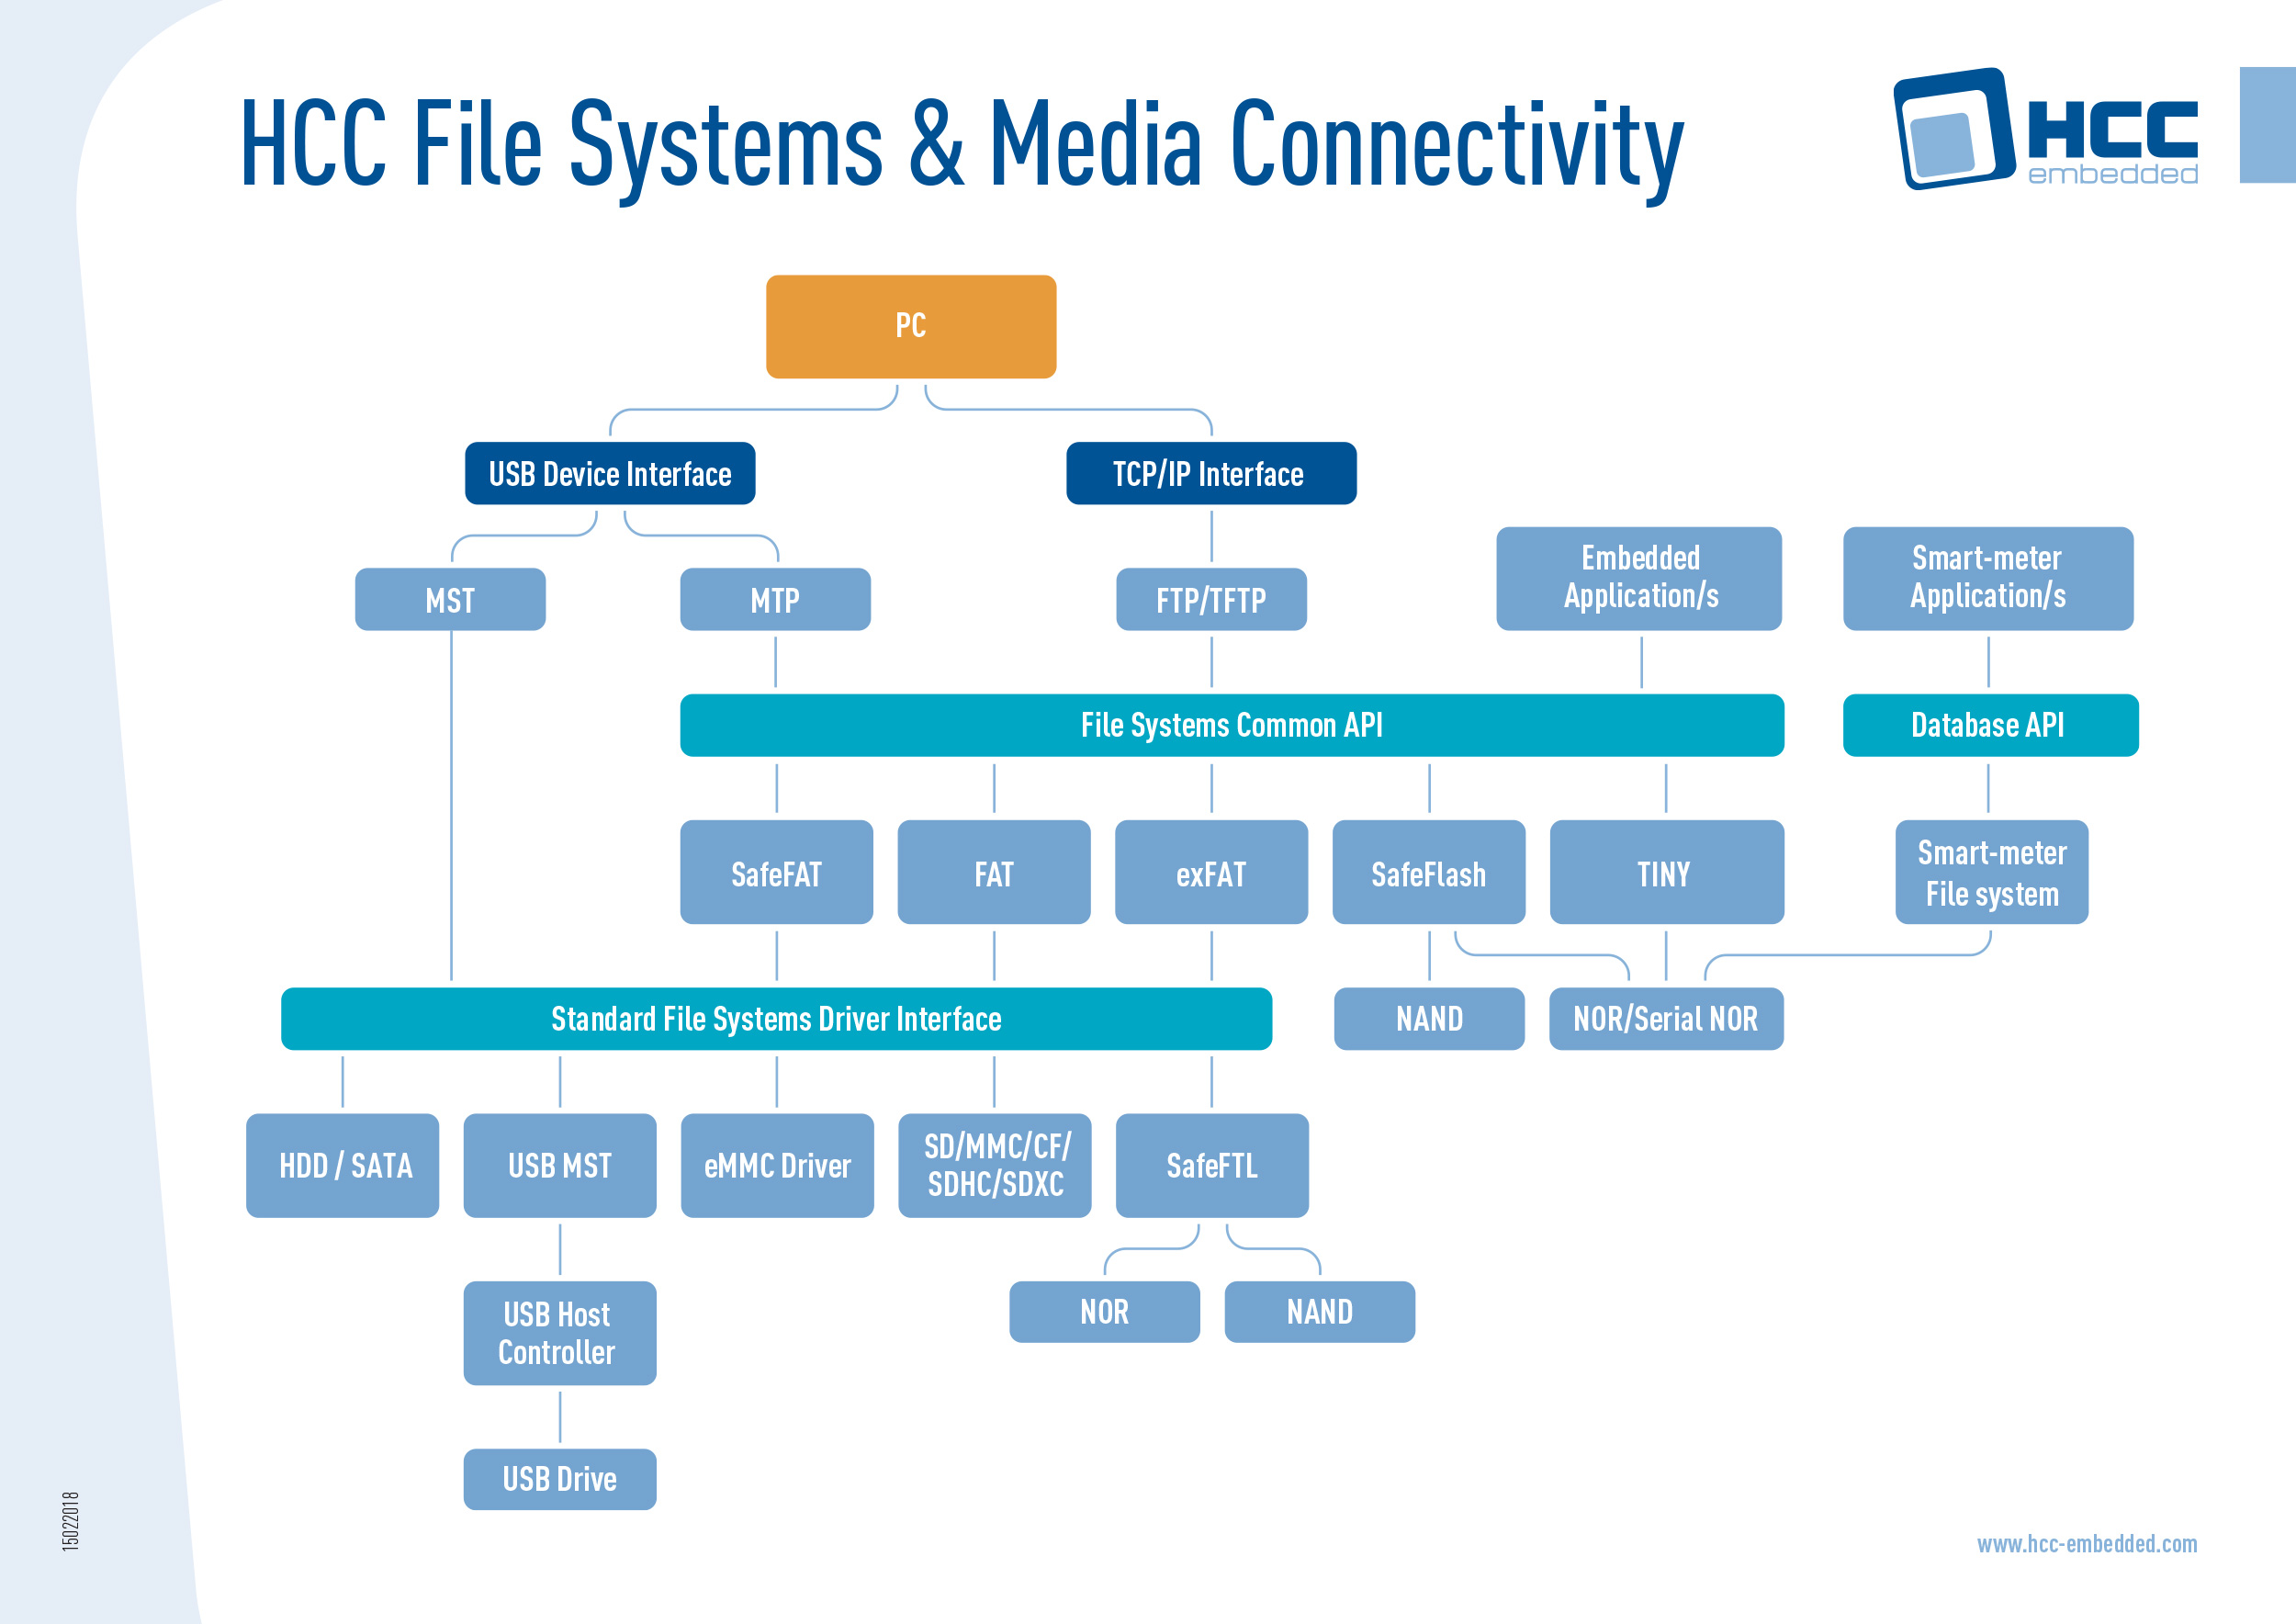 HCC File Systems & Media Connectivity